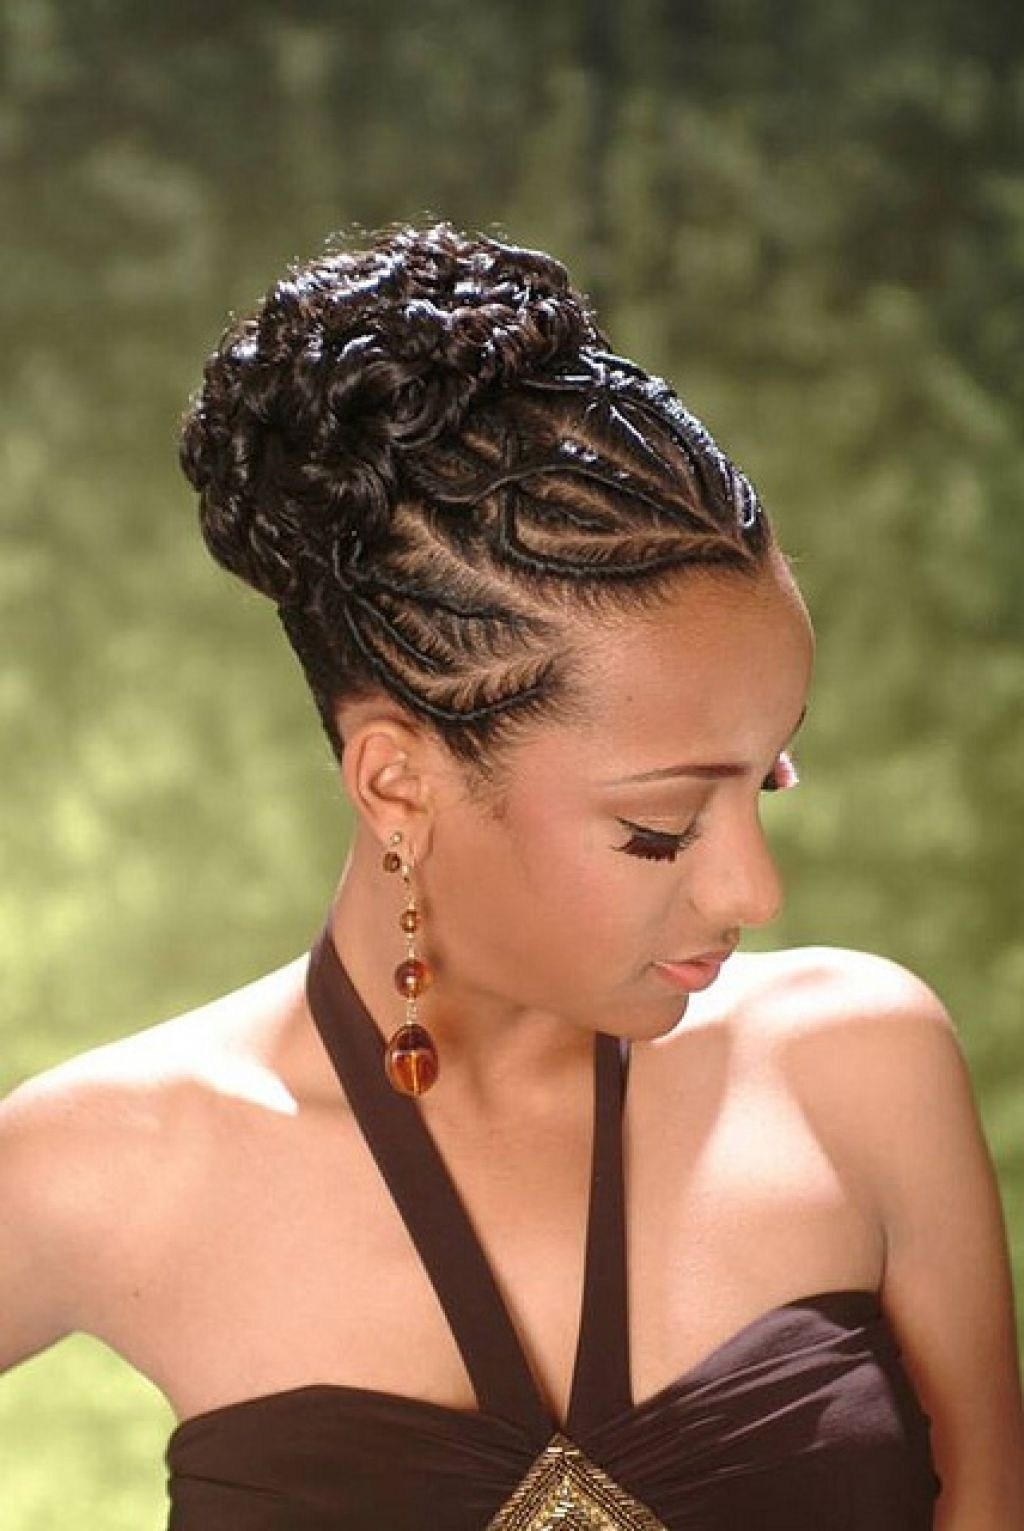 American French Braid Updo Hairstyles 2017 For Afro American Updo Hairstyles (View 8 of 15)